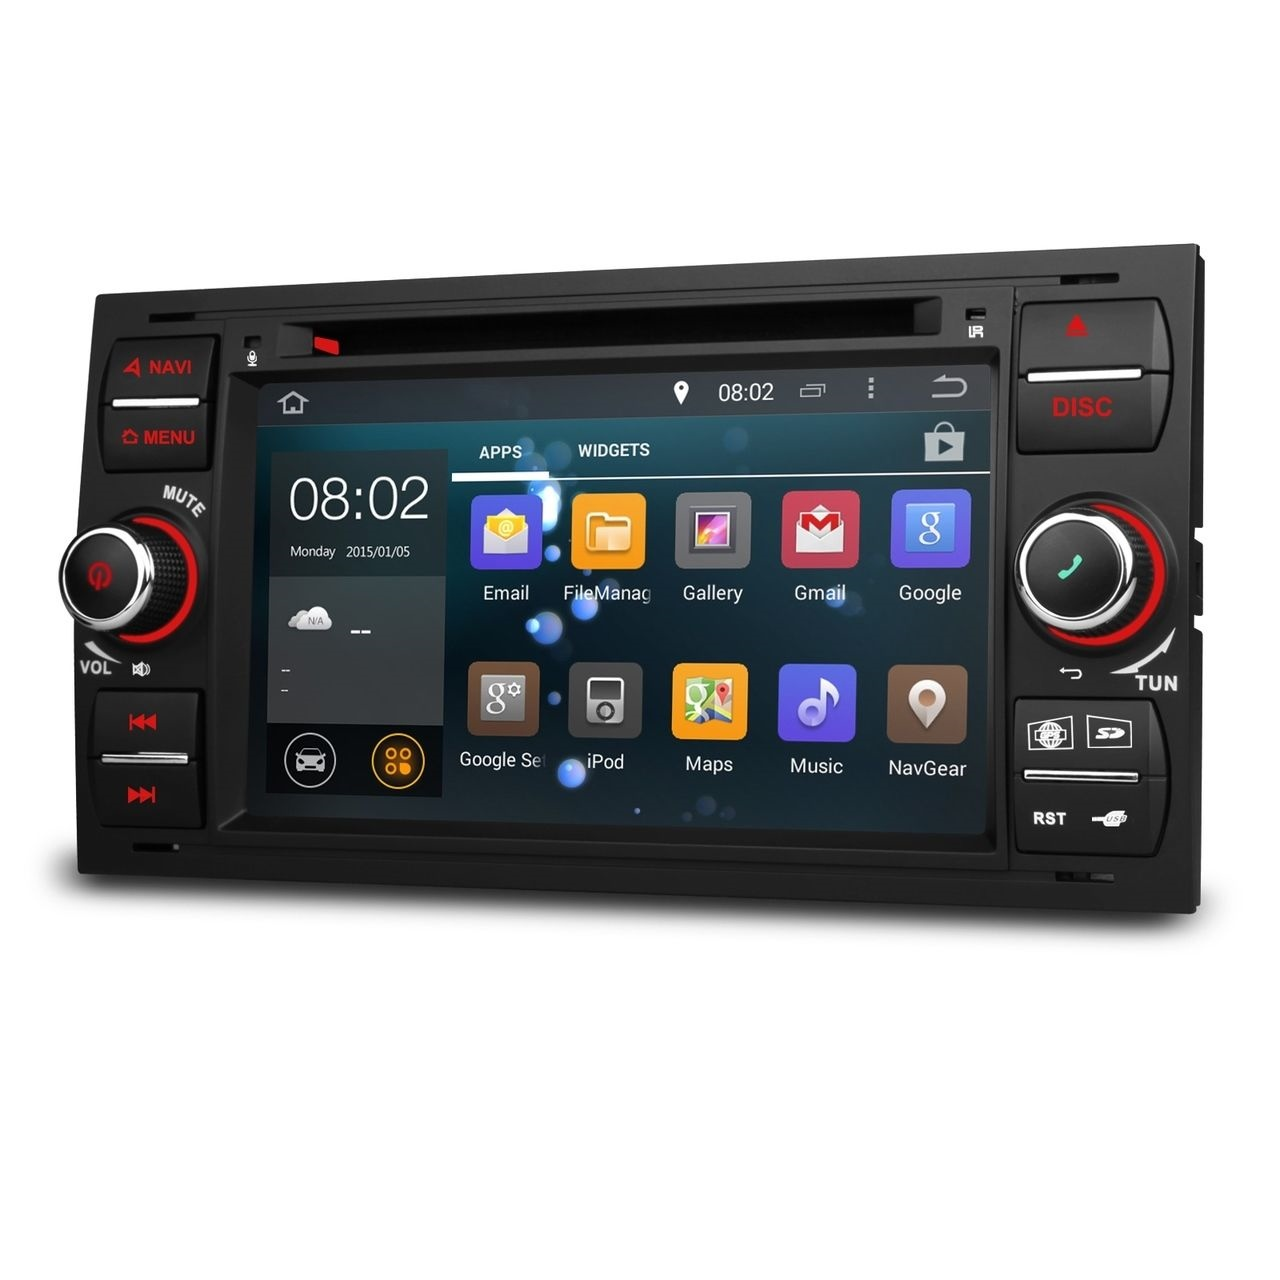 ford mondeo mk3 s max android 5 1 head unit radio stereo. Black Bedroom Furniture Sets. Home Design Ideas